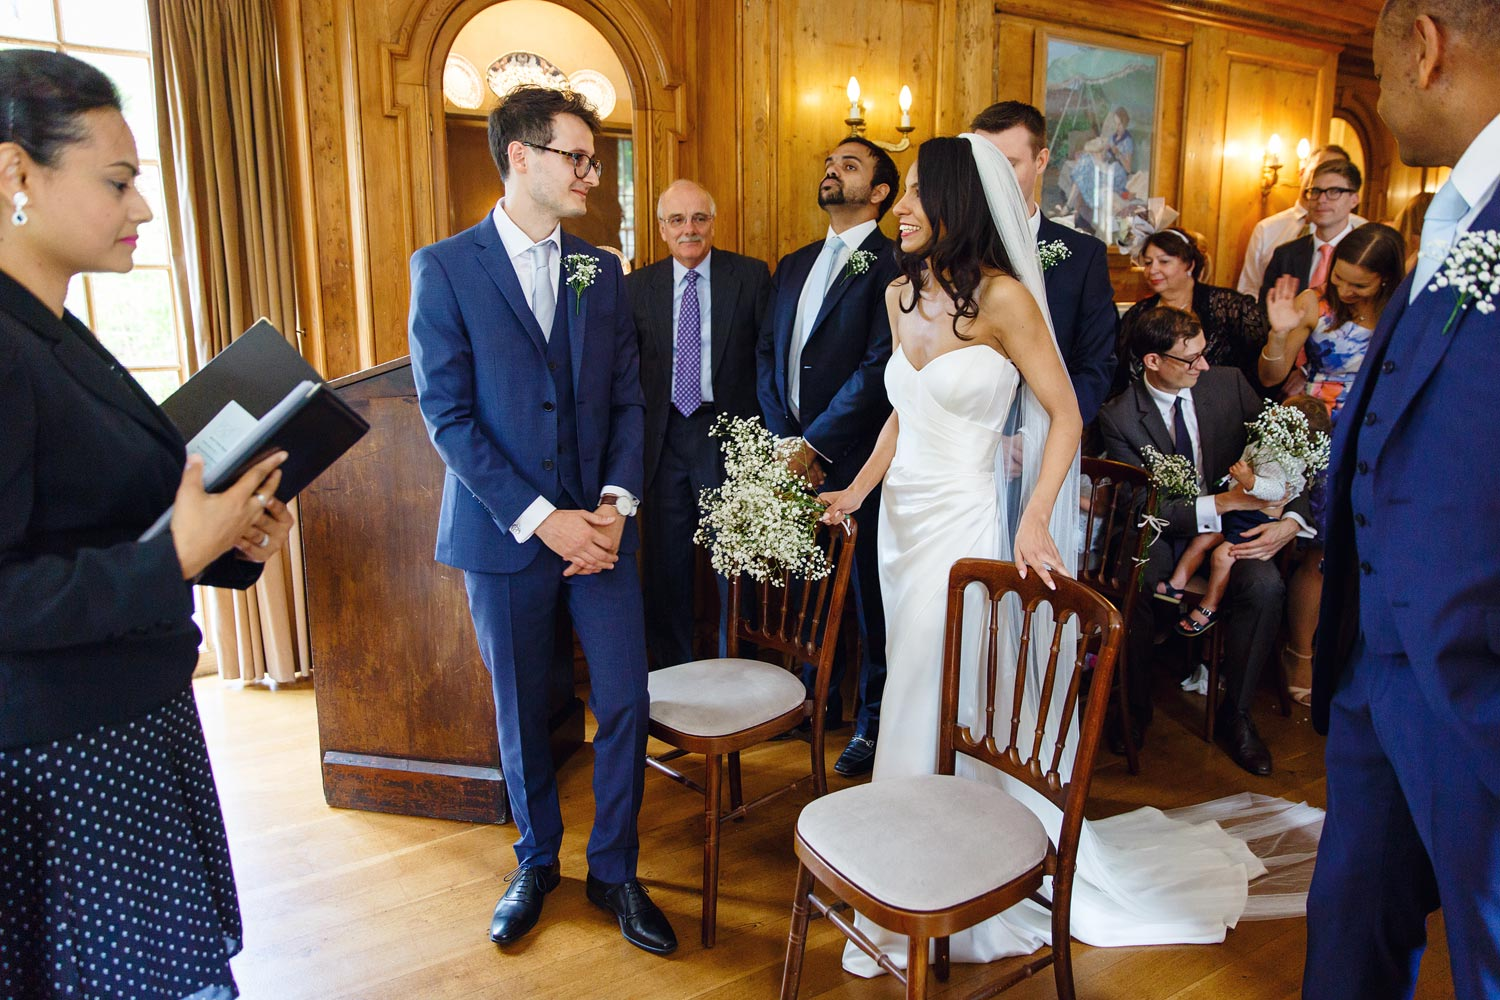 A bride walks down the aisle at Burgh House Museum in Hampstead, London - wedding photographer